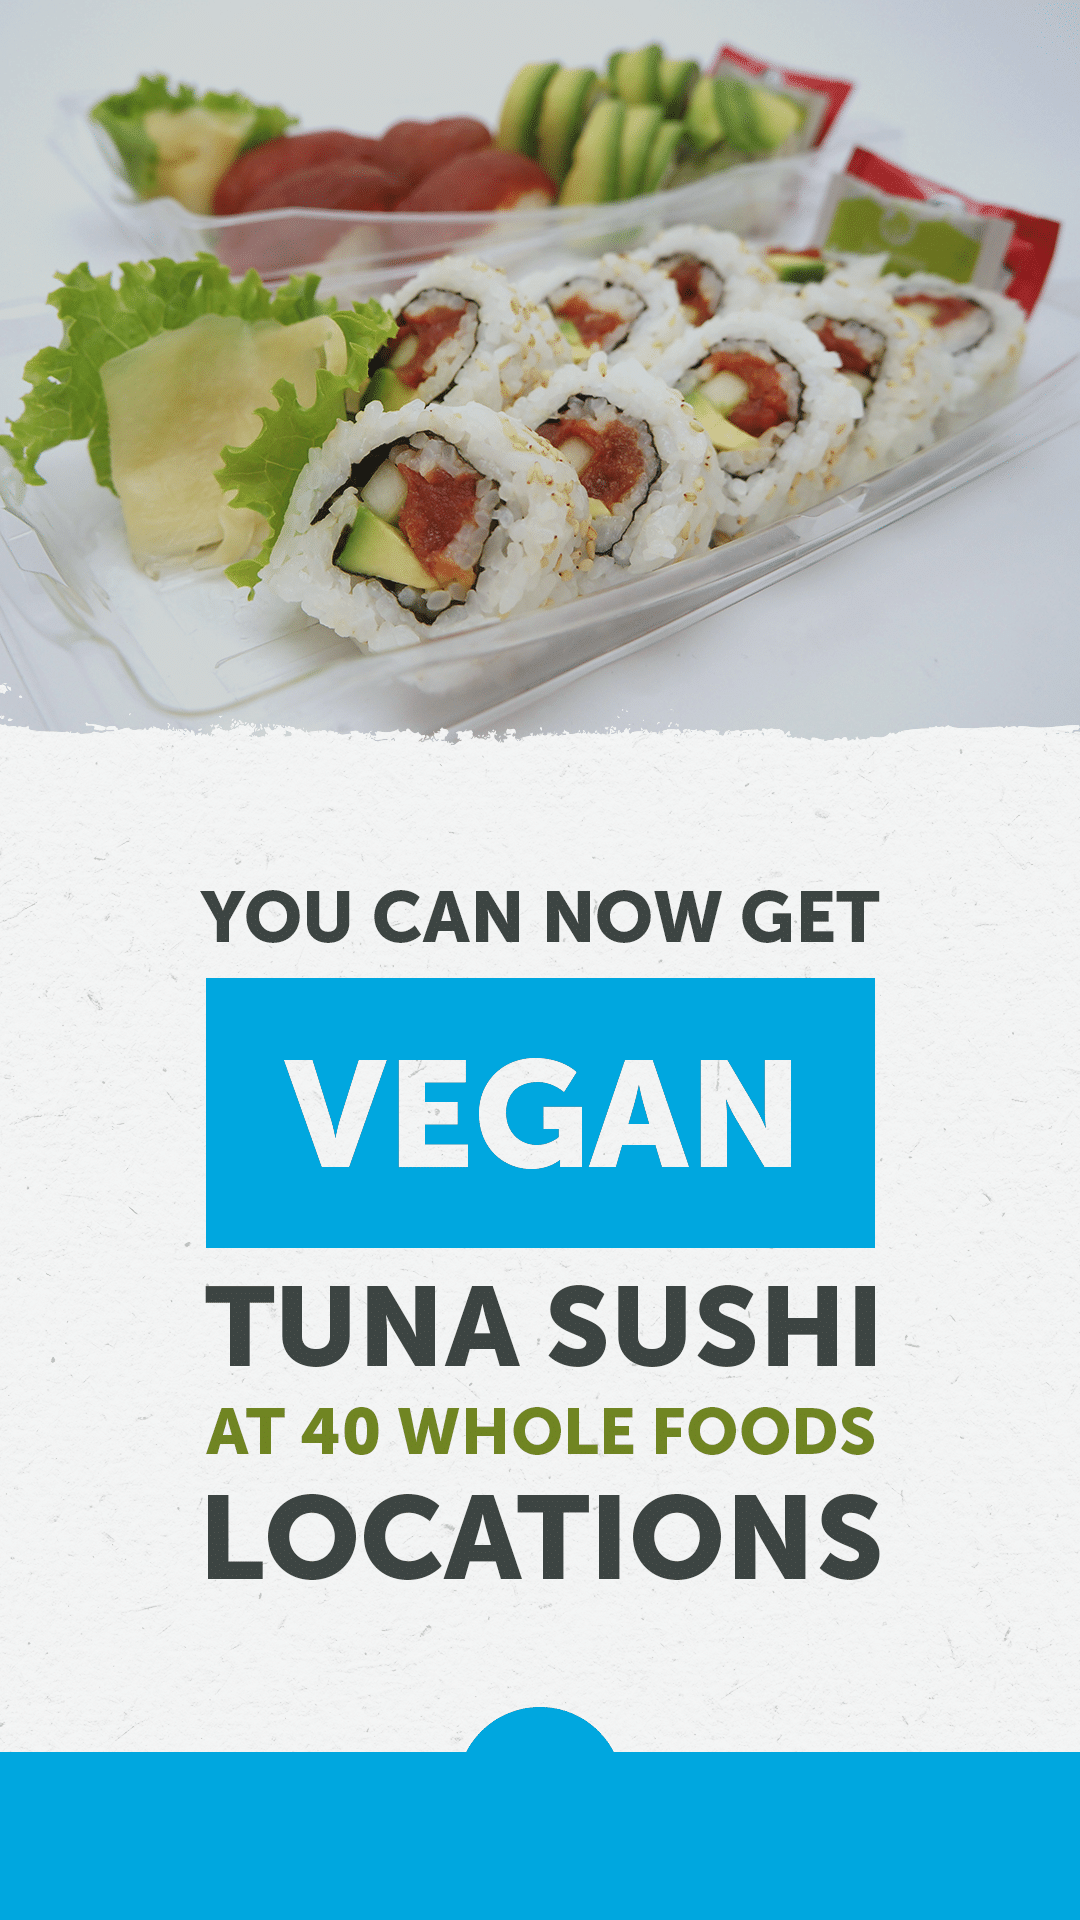 You Can Now Get Vegan Tuna Sushi at 40 Whole Foods Locations